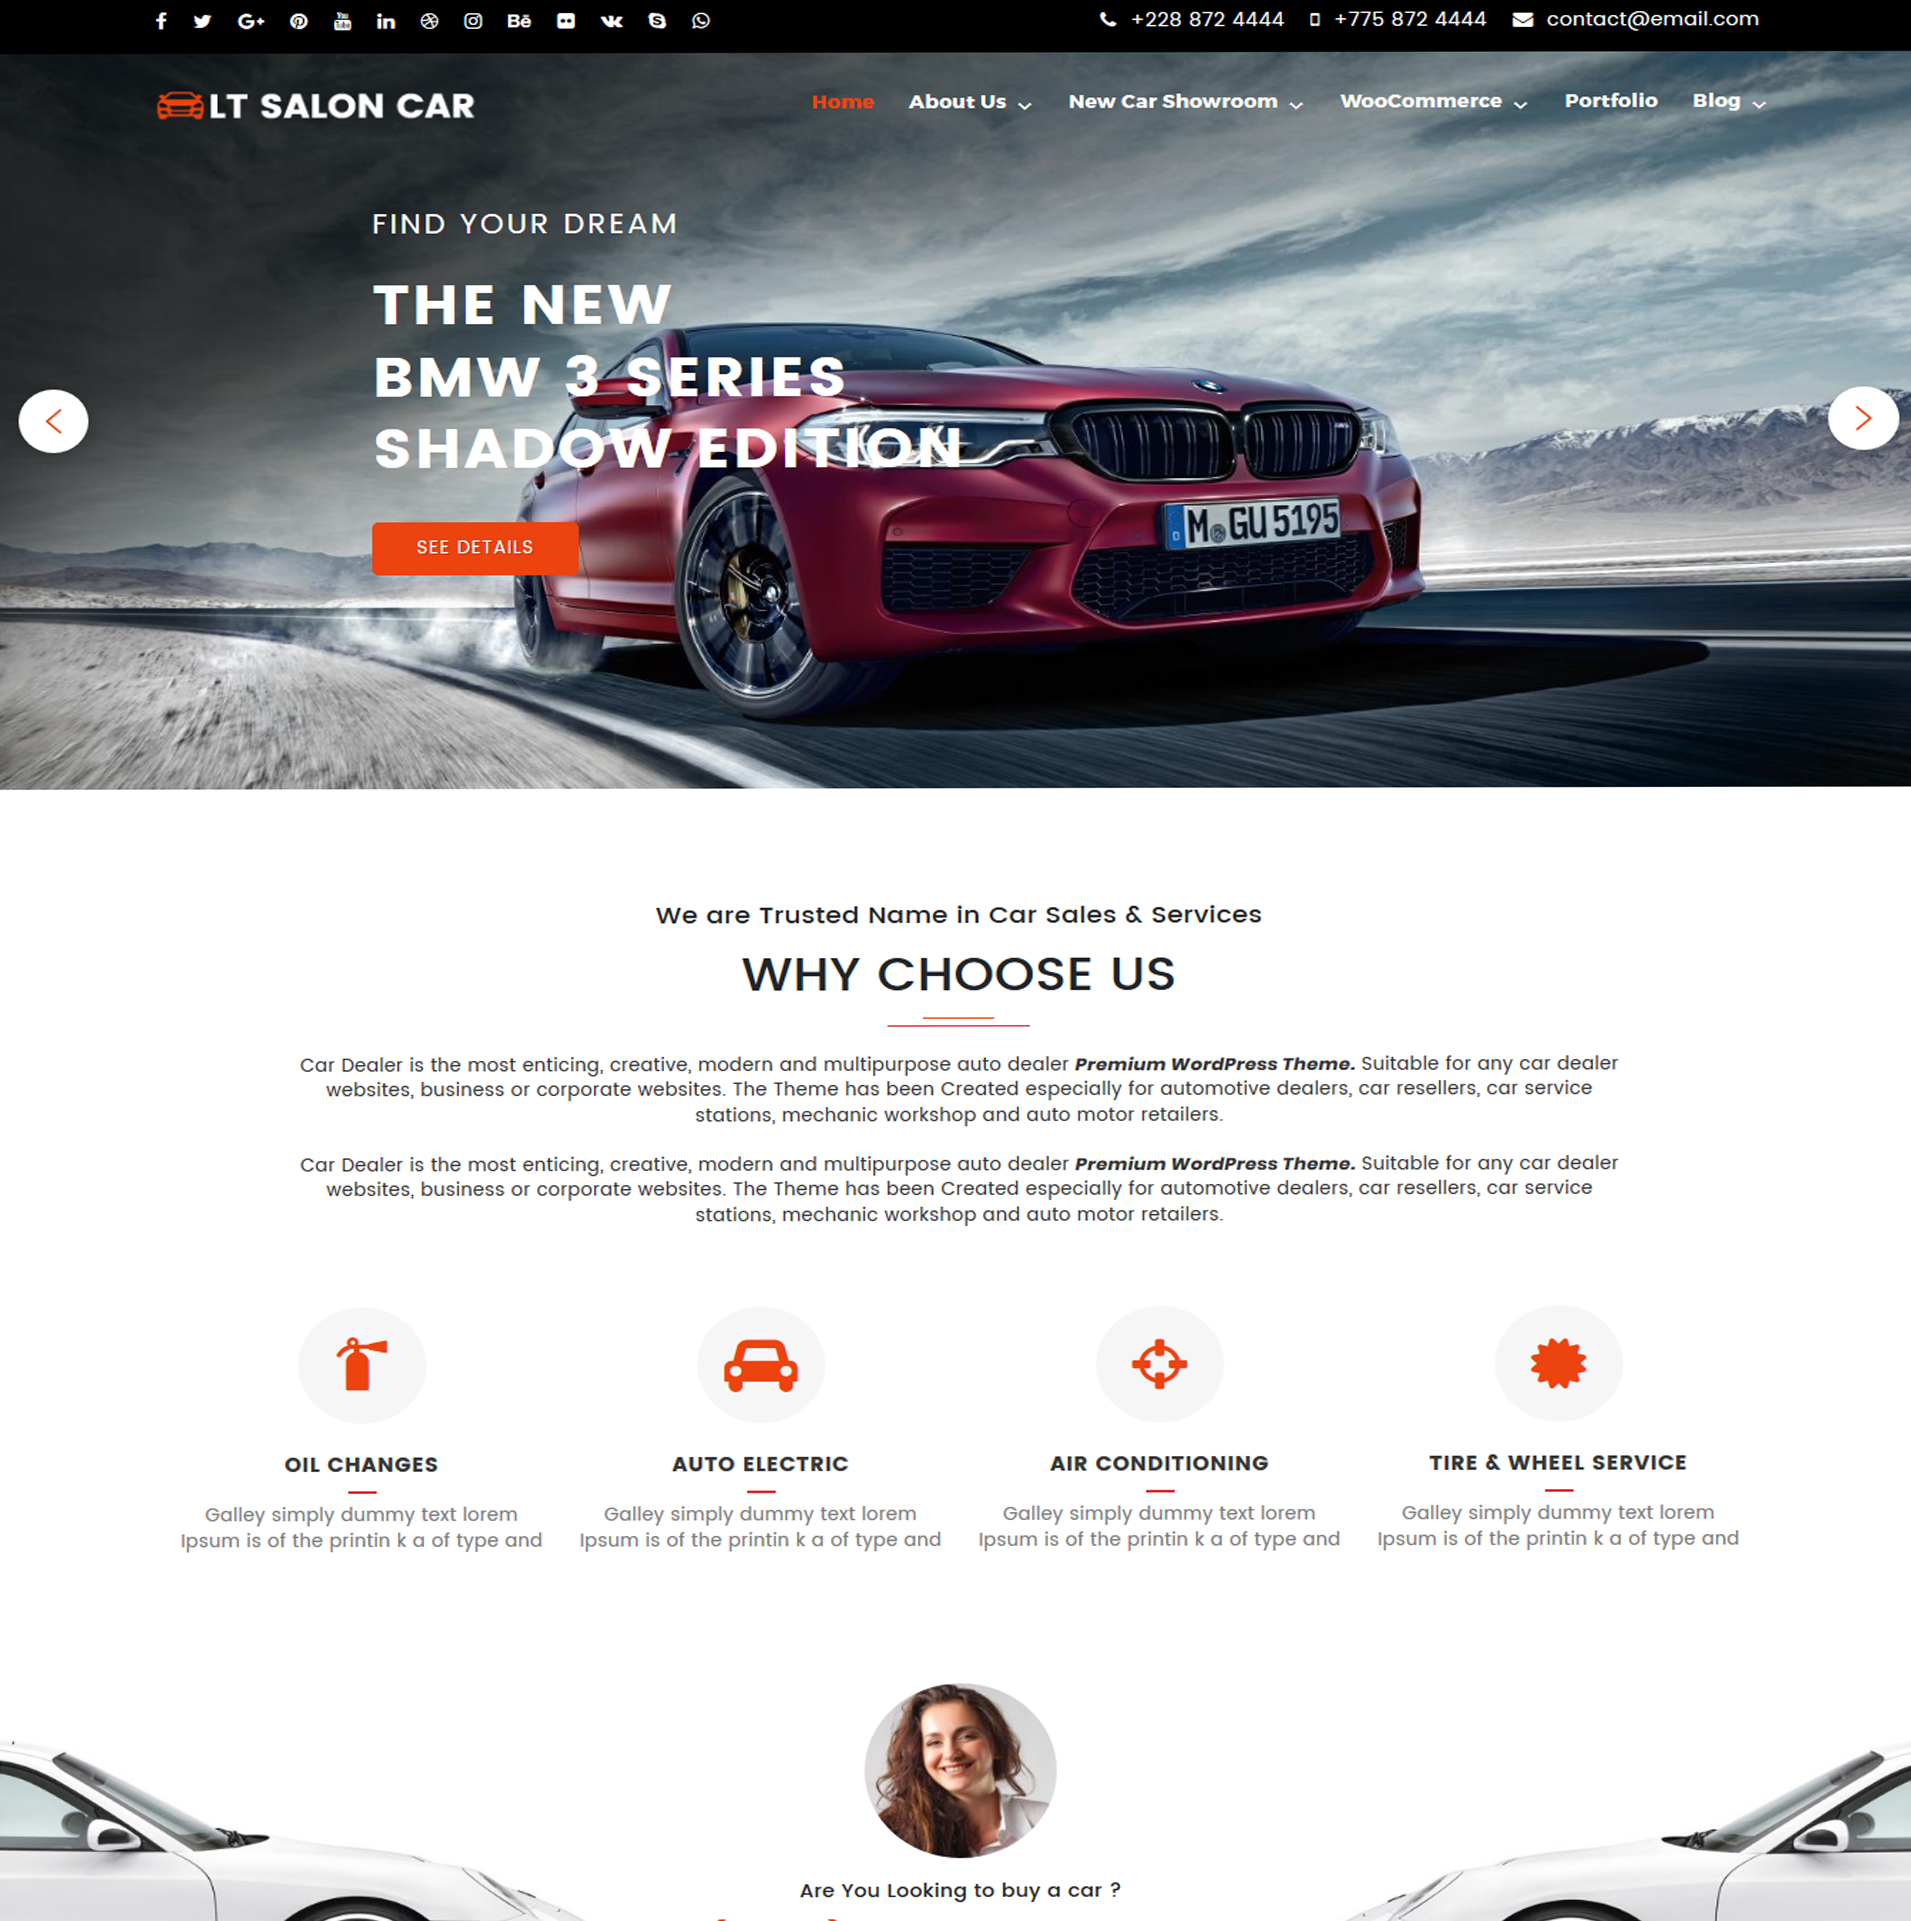 lt-salon-car-wordpress-theme